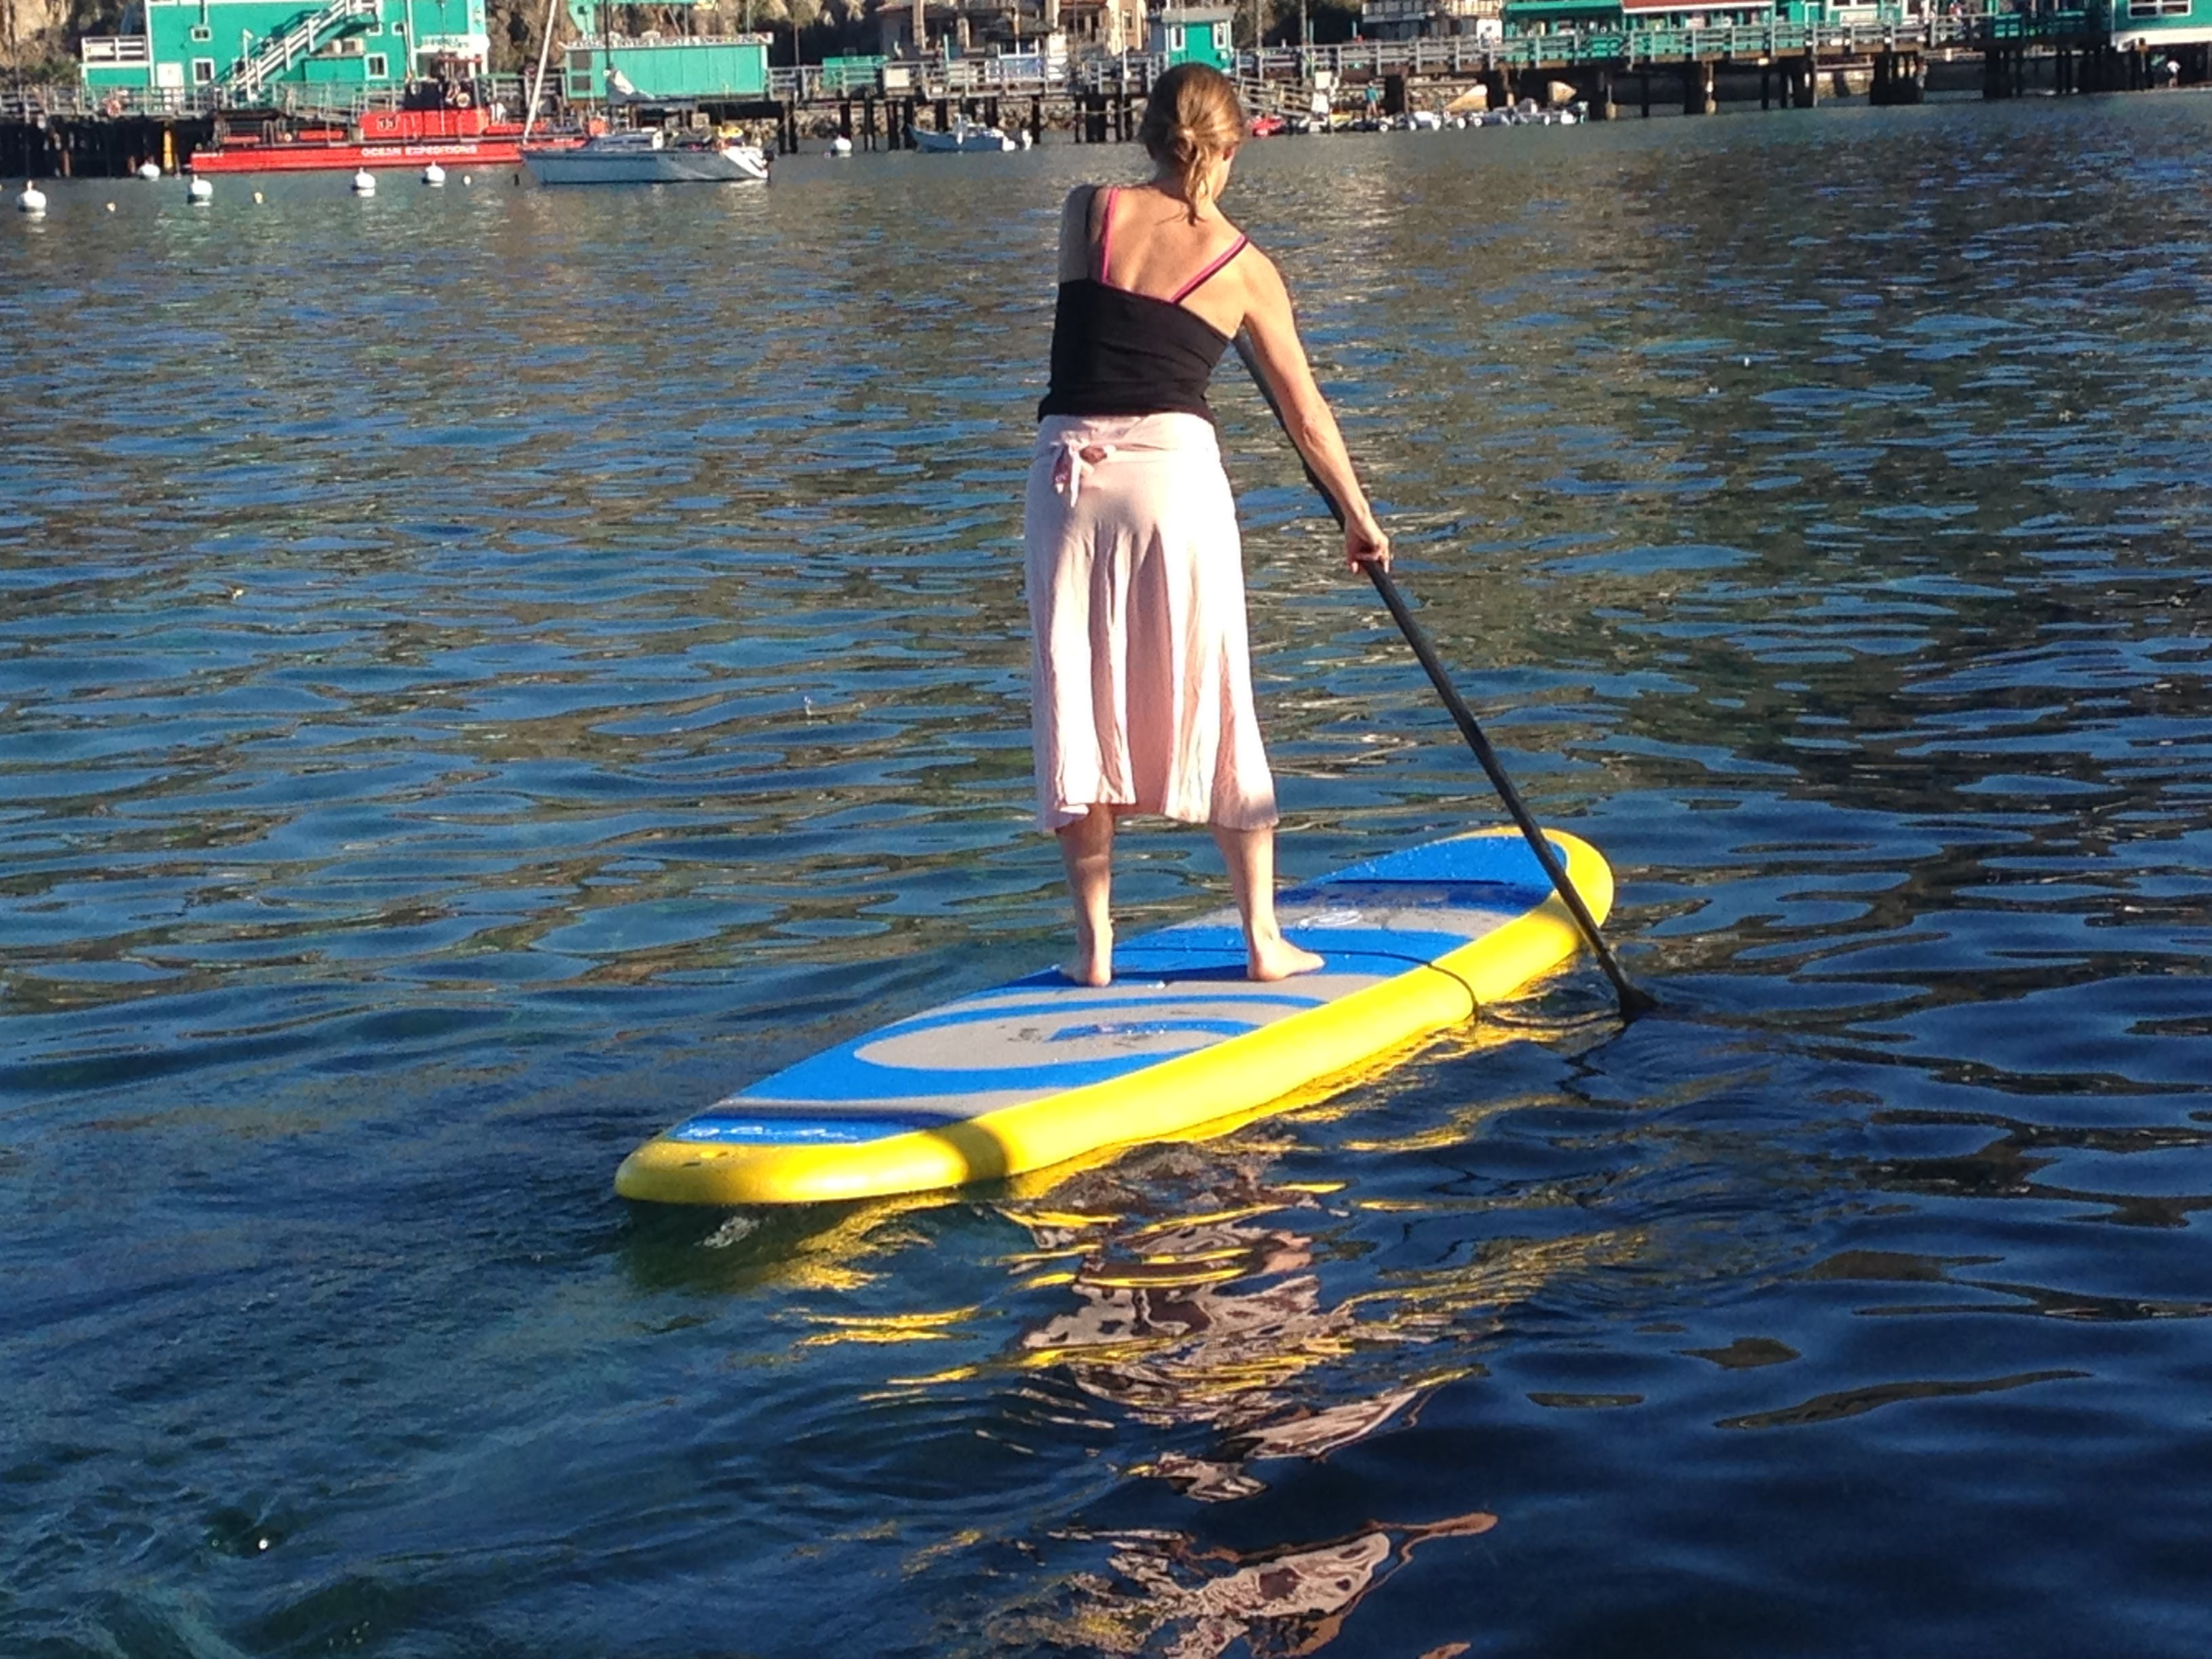 Women standing up on a blue and green stand-up paddle board in the water